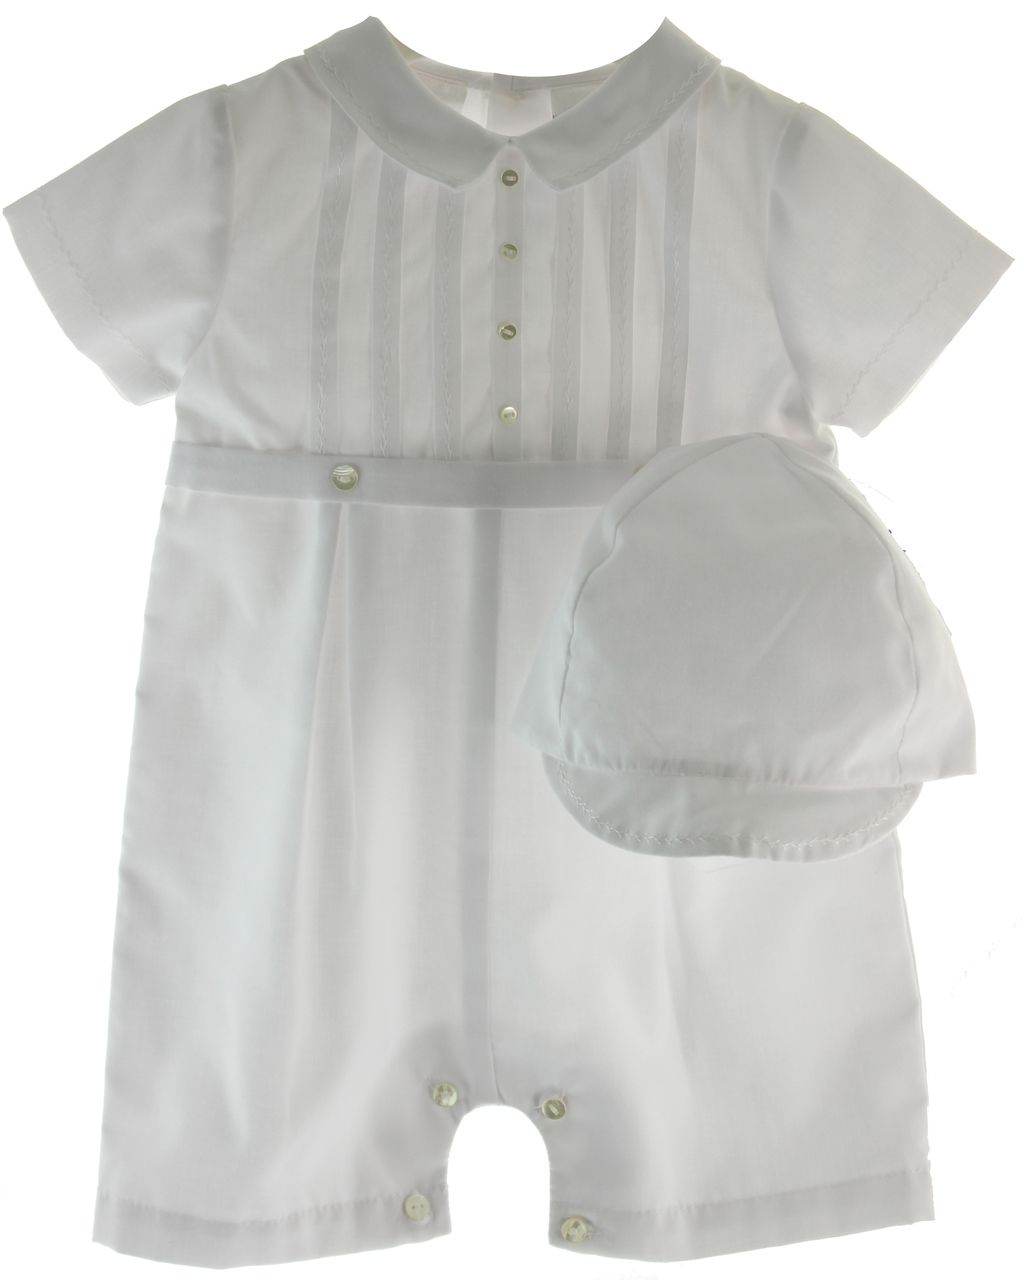 c020e8ece Pin by Hiccups Childrens Boutique on Boys Dedication Outfits ...